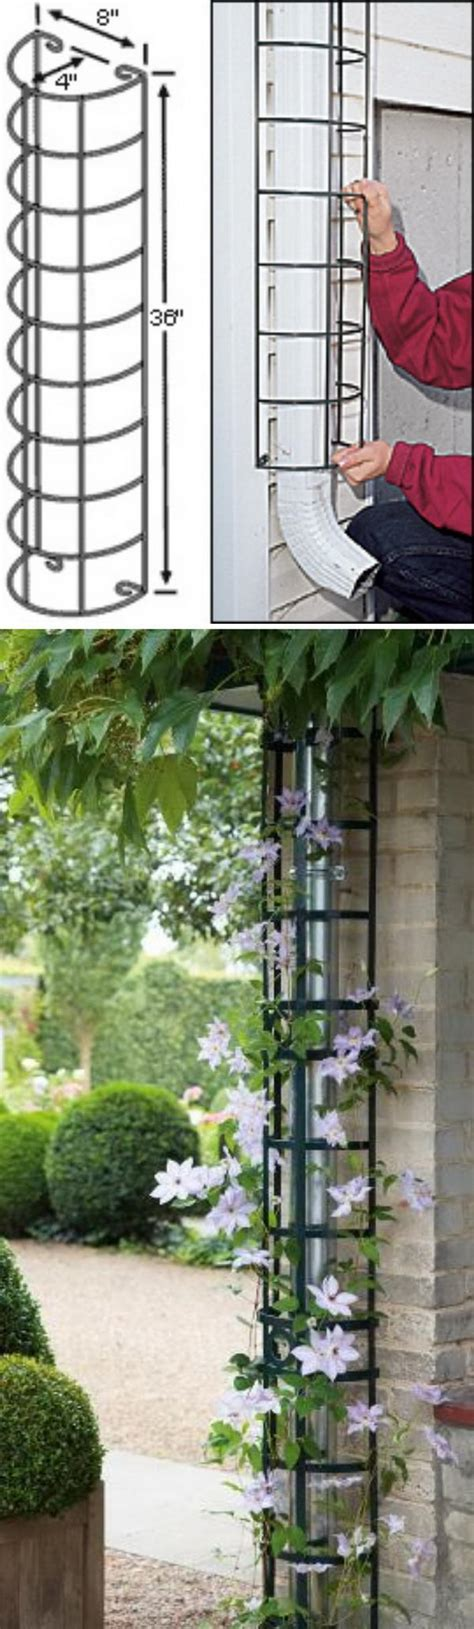 Downspout Trellis 20 Awesome Diy Garden Trellis Projects Hative